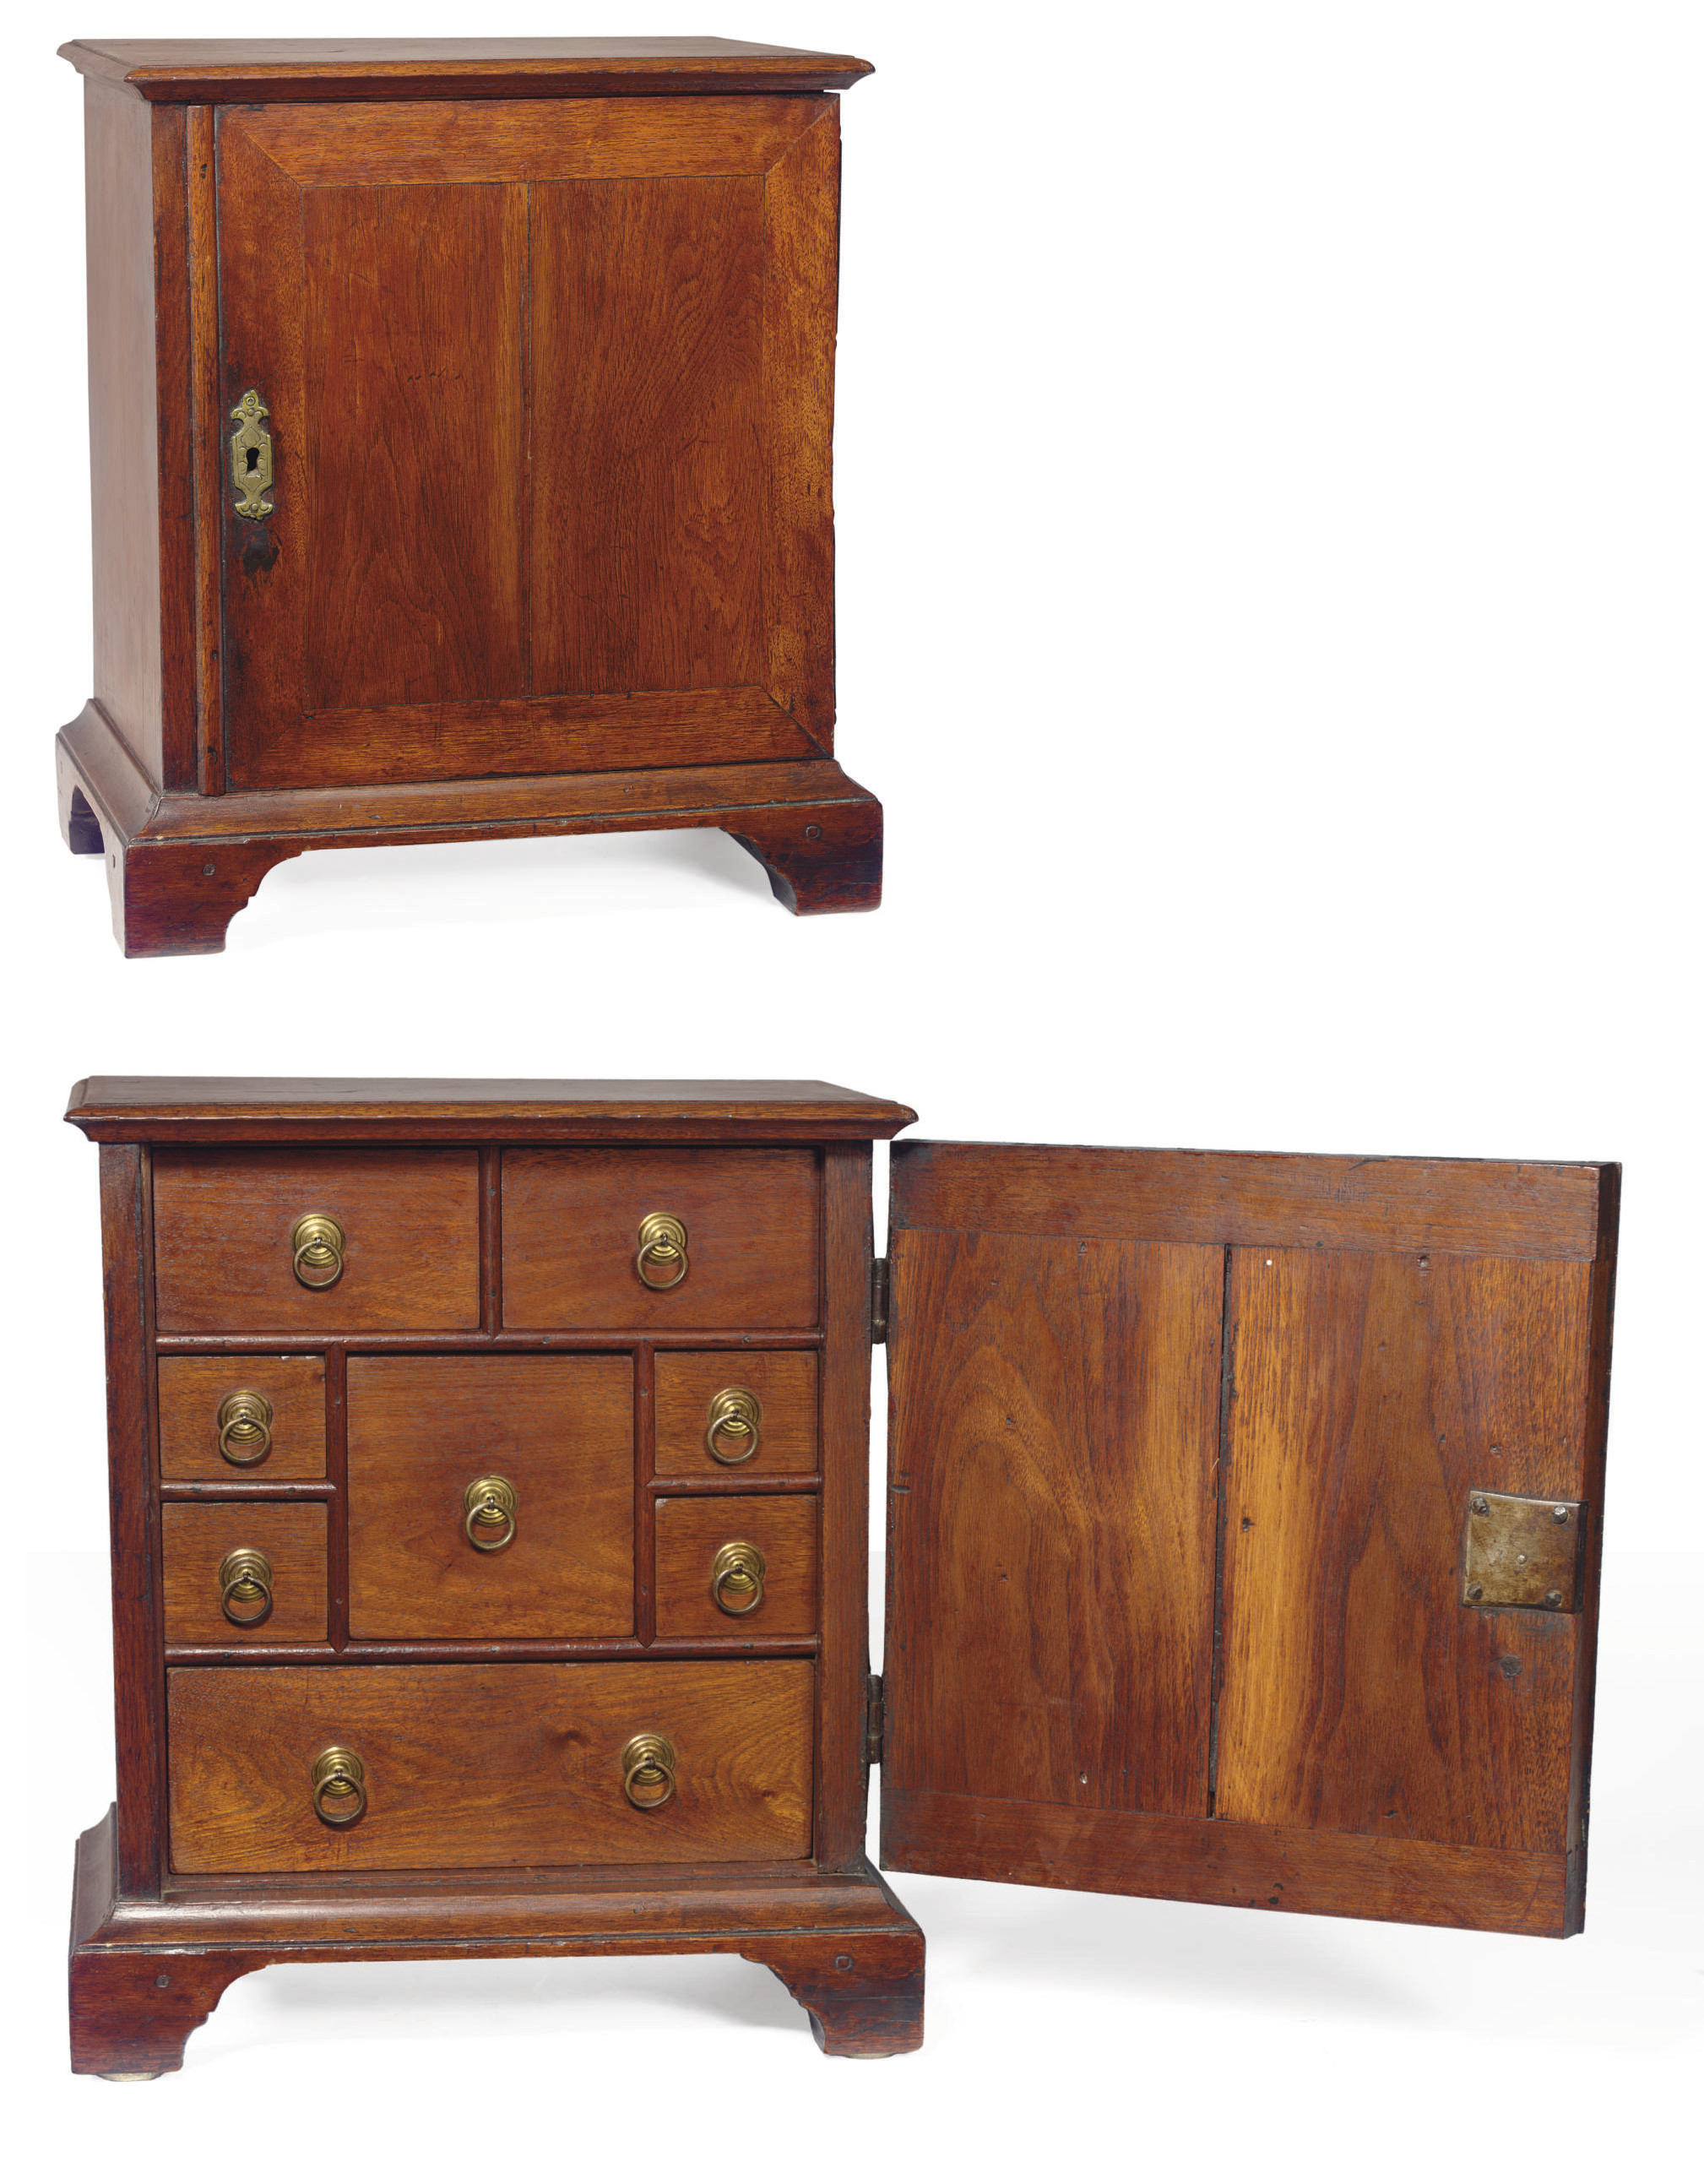 A Chippendale Walnut Spice Cab